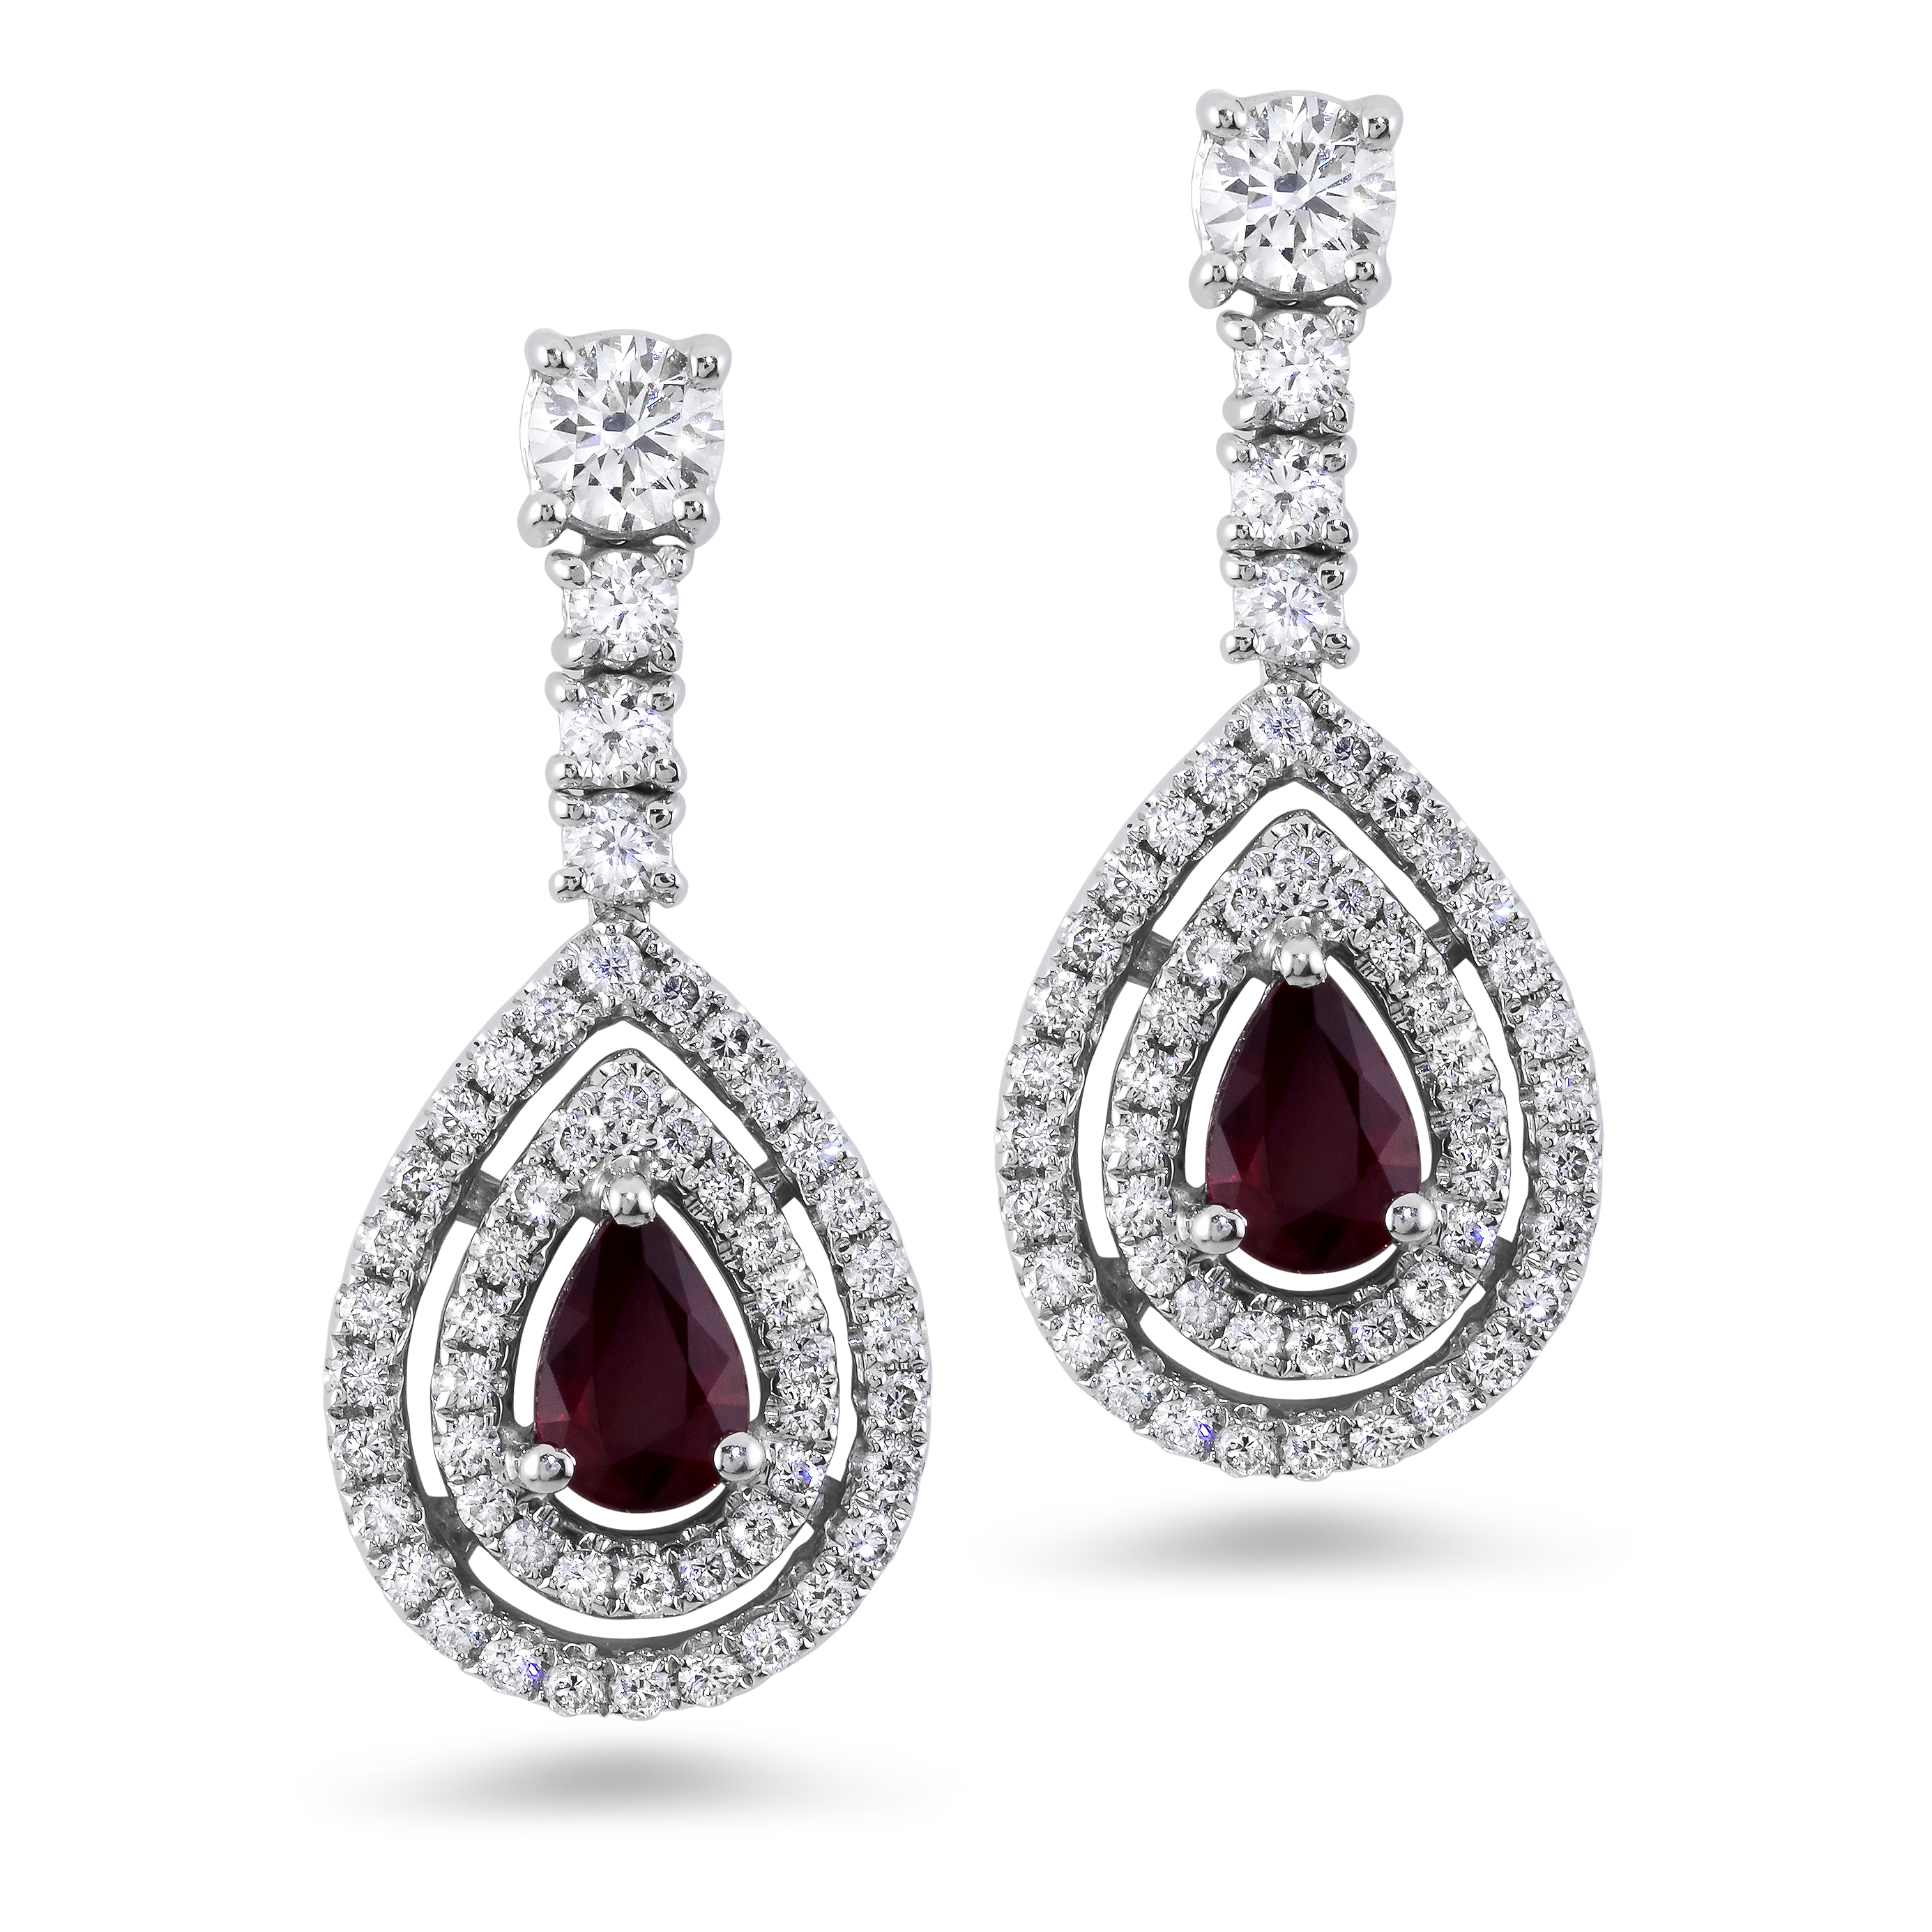 Ruby transparent beautiful. Diamond earrings with a